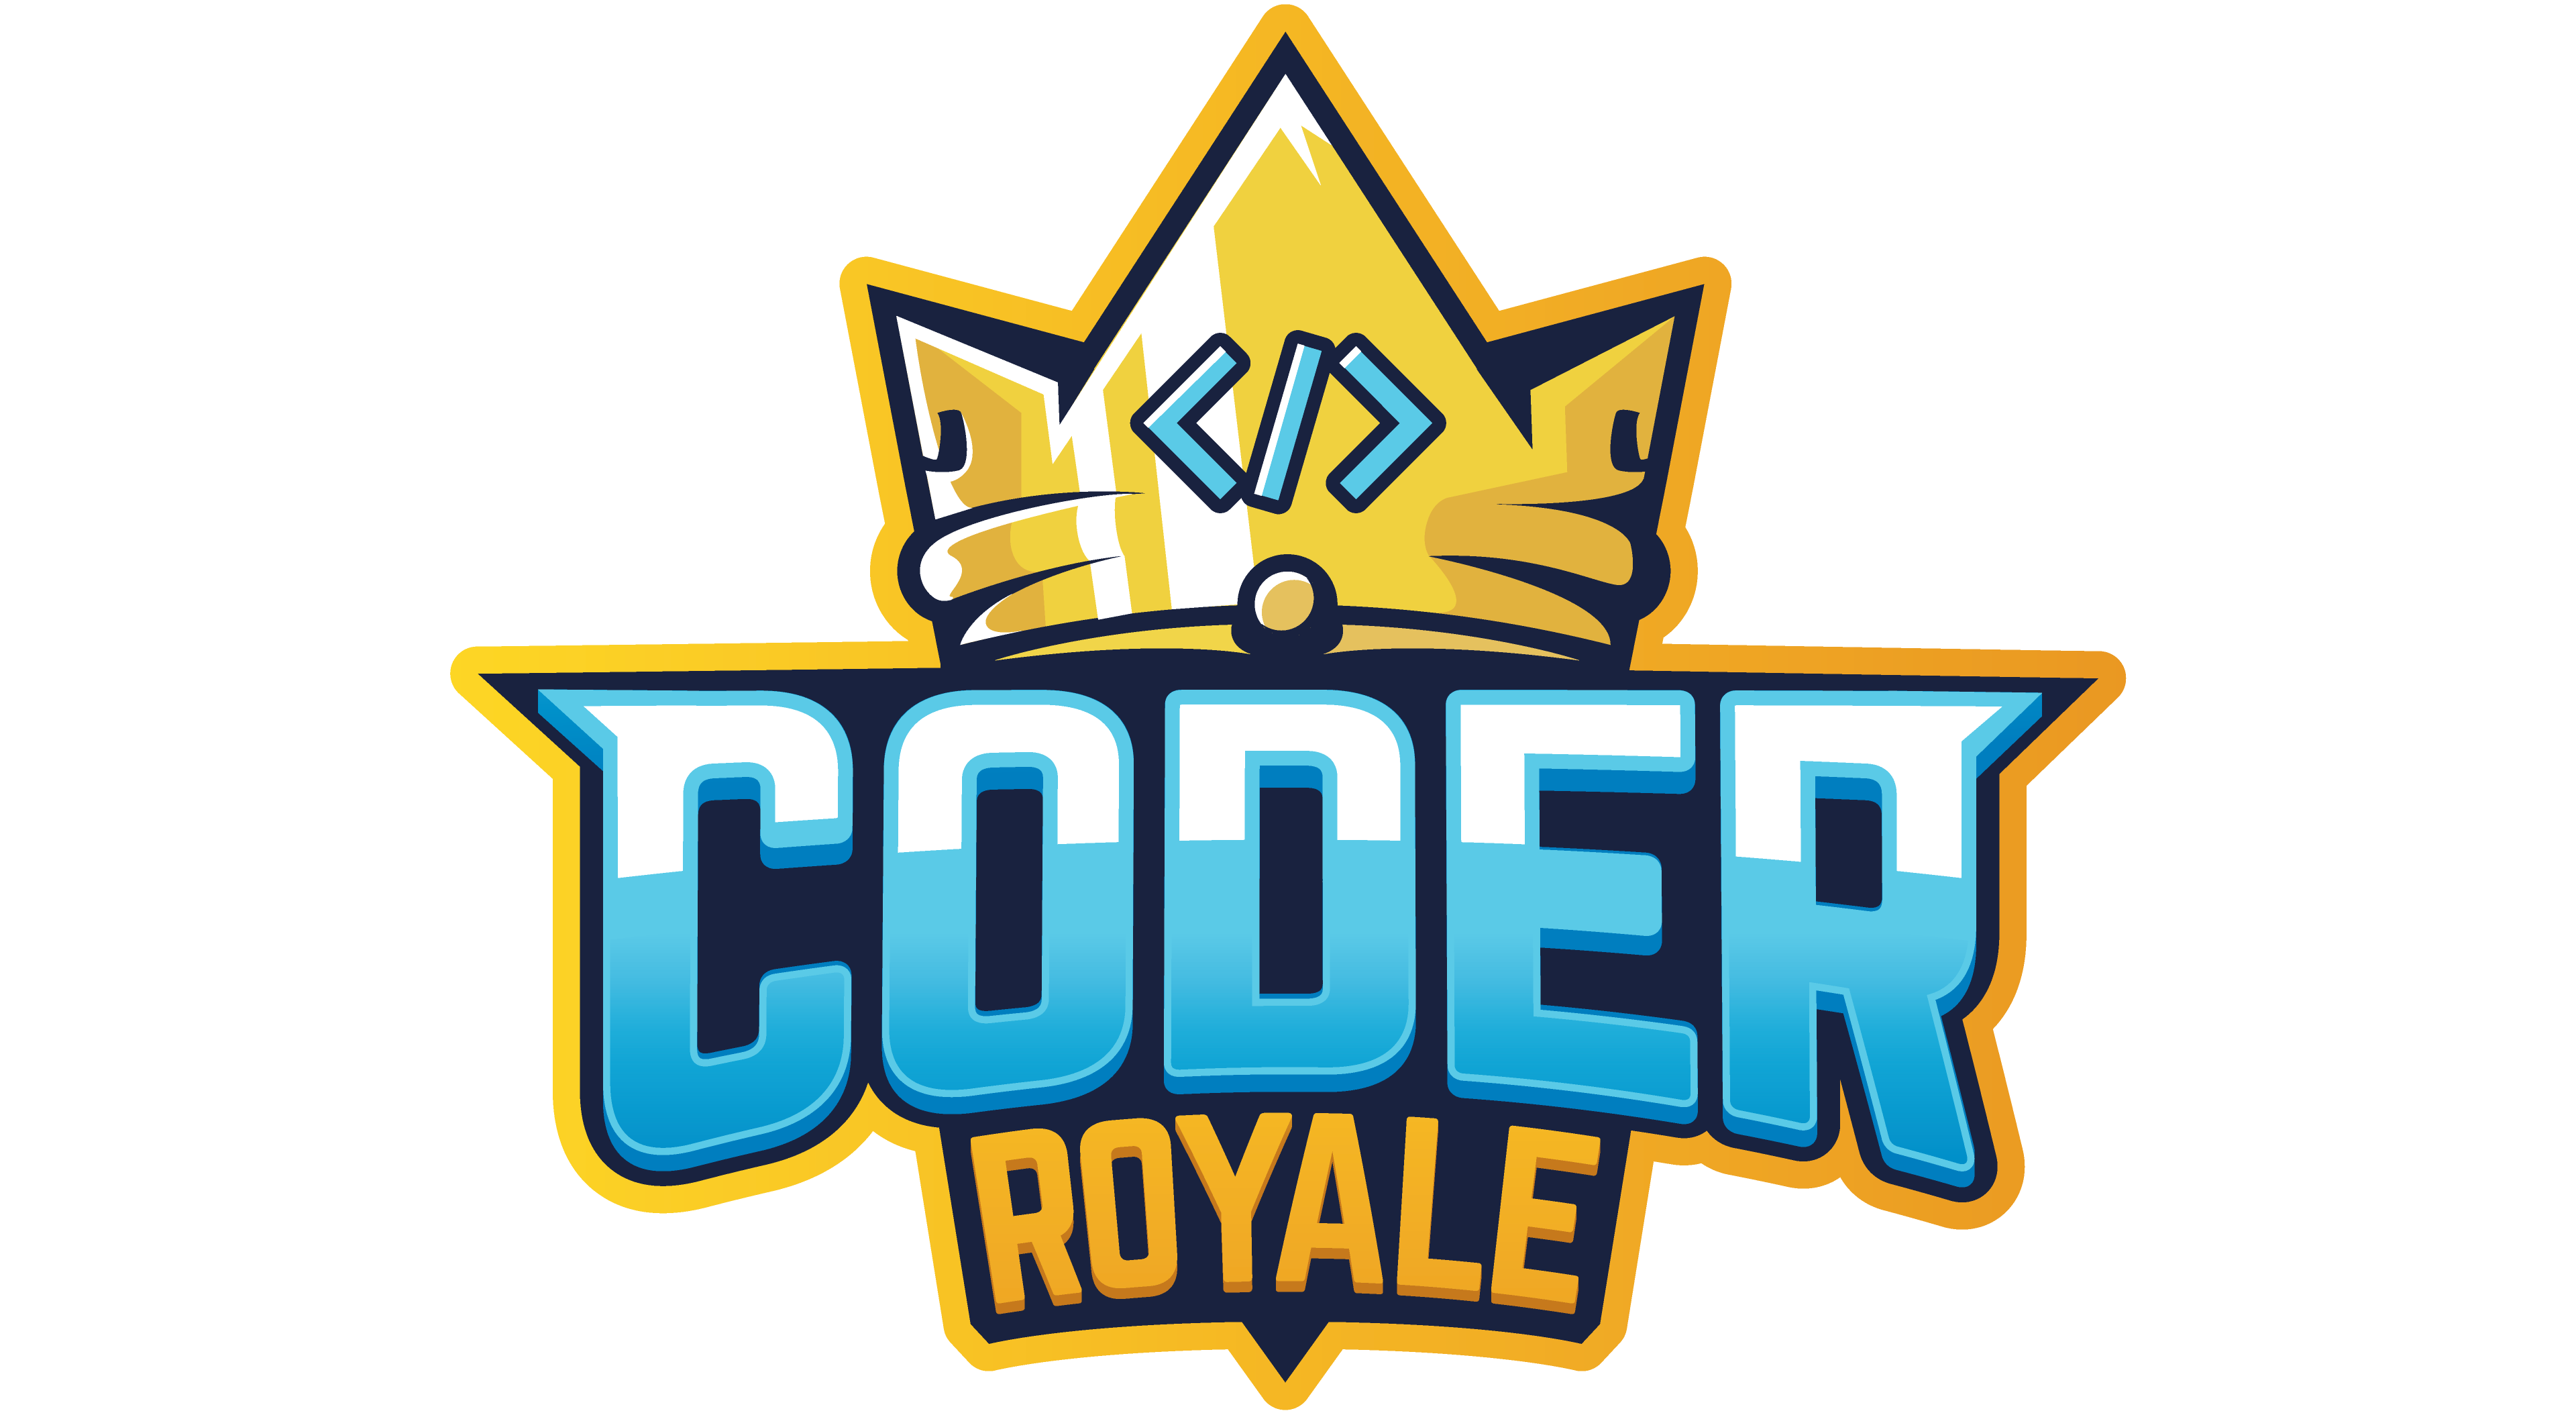 Coder Royale